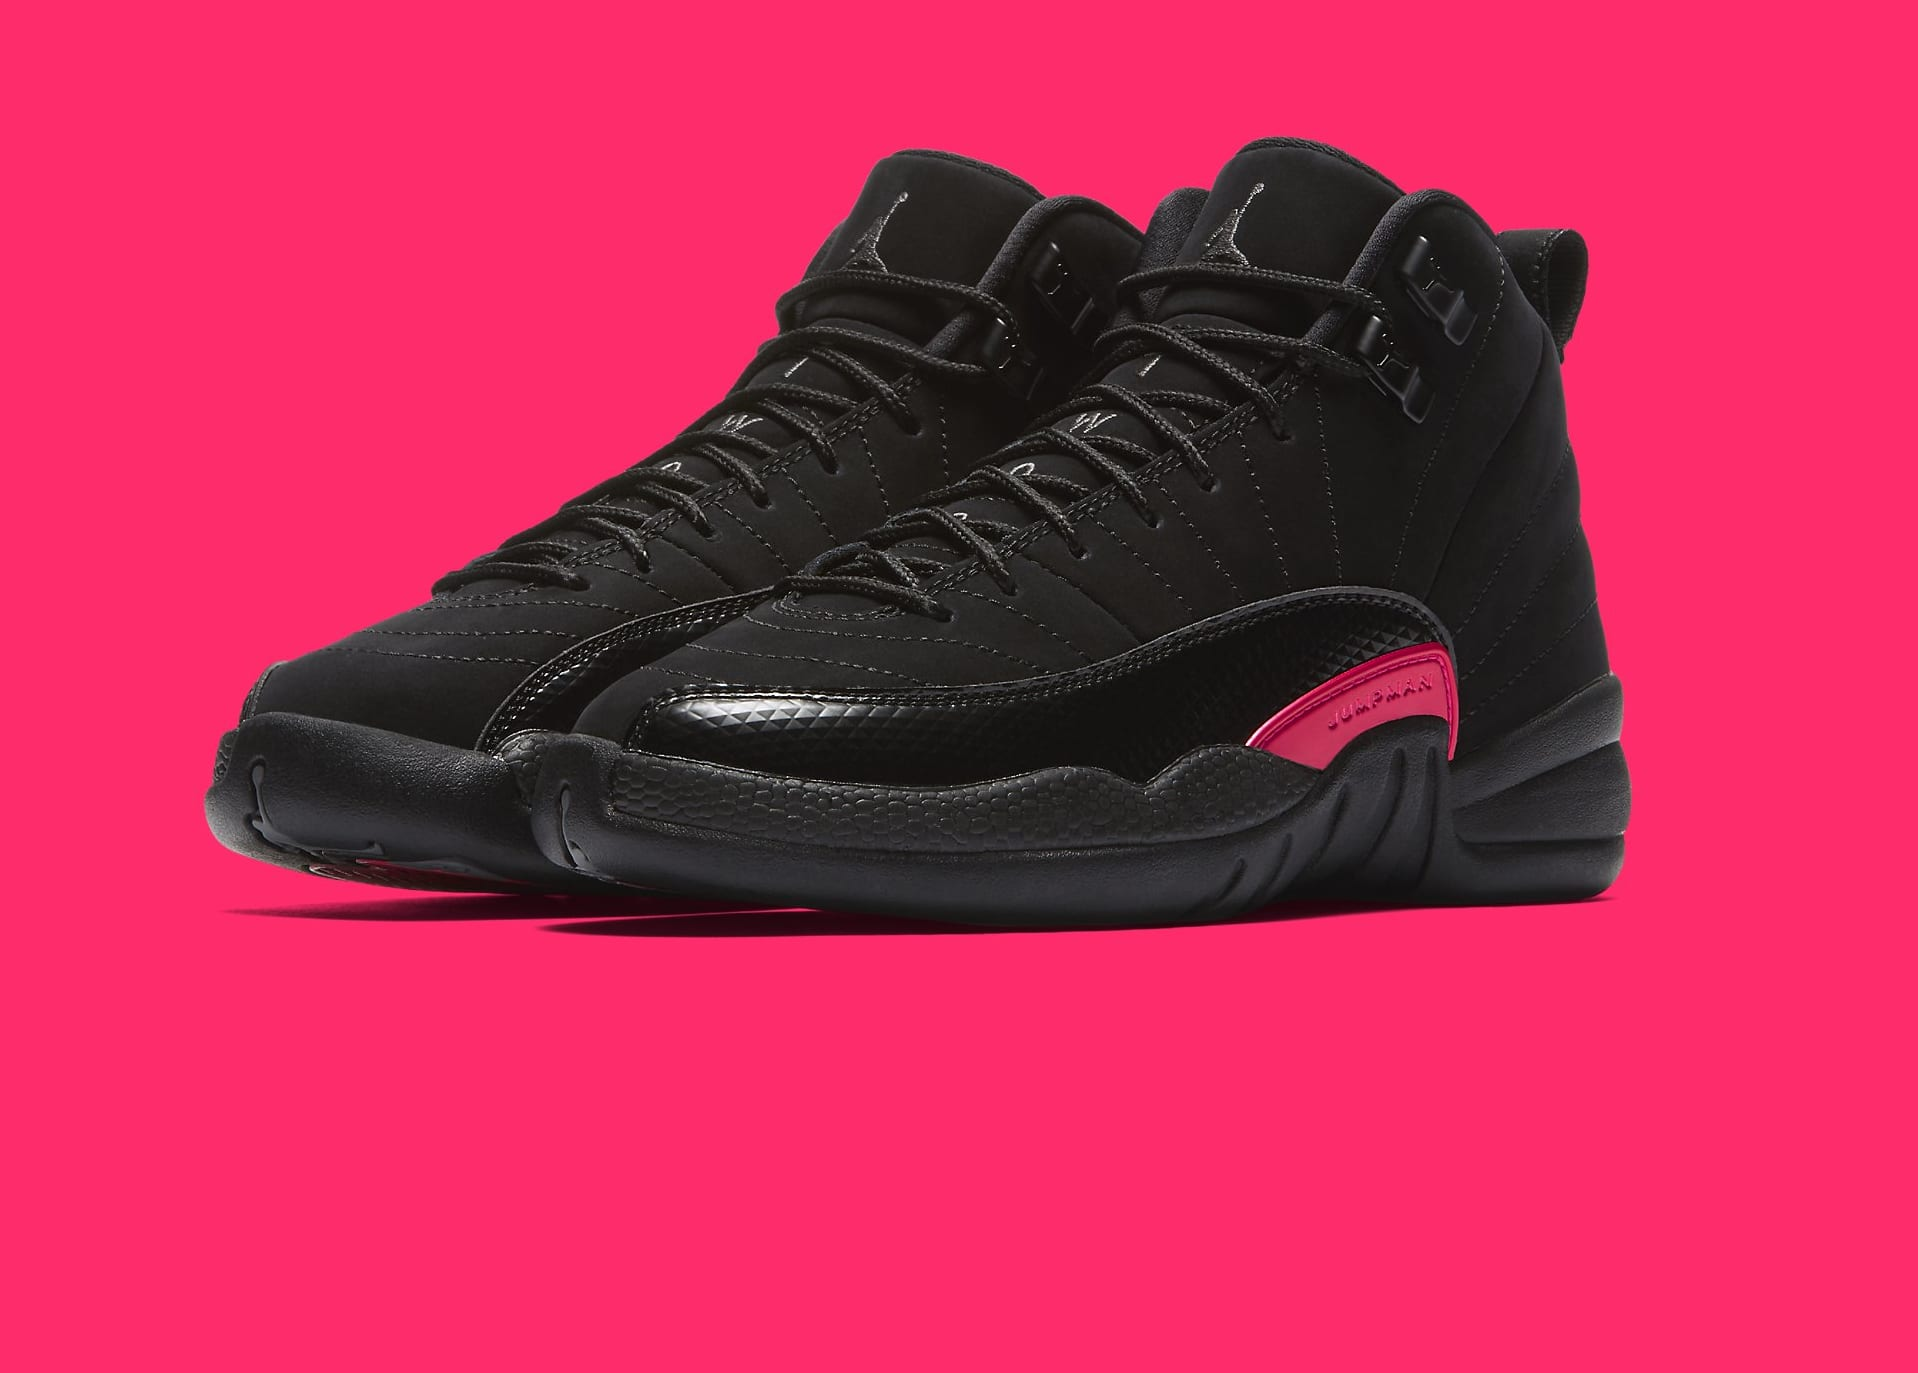 cab2f15bd6f7 get air jordan 11 retro gs gamma blue b653d 6d6ec  wholesale girls colorway  in time for the back to school season. c4ceb 87d28